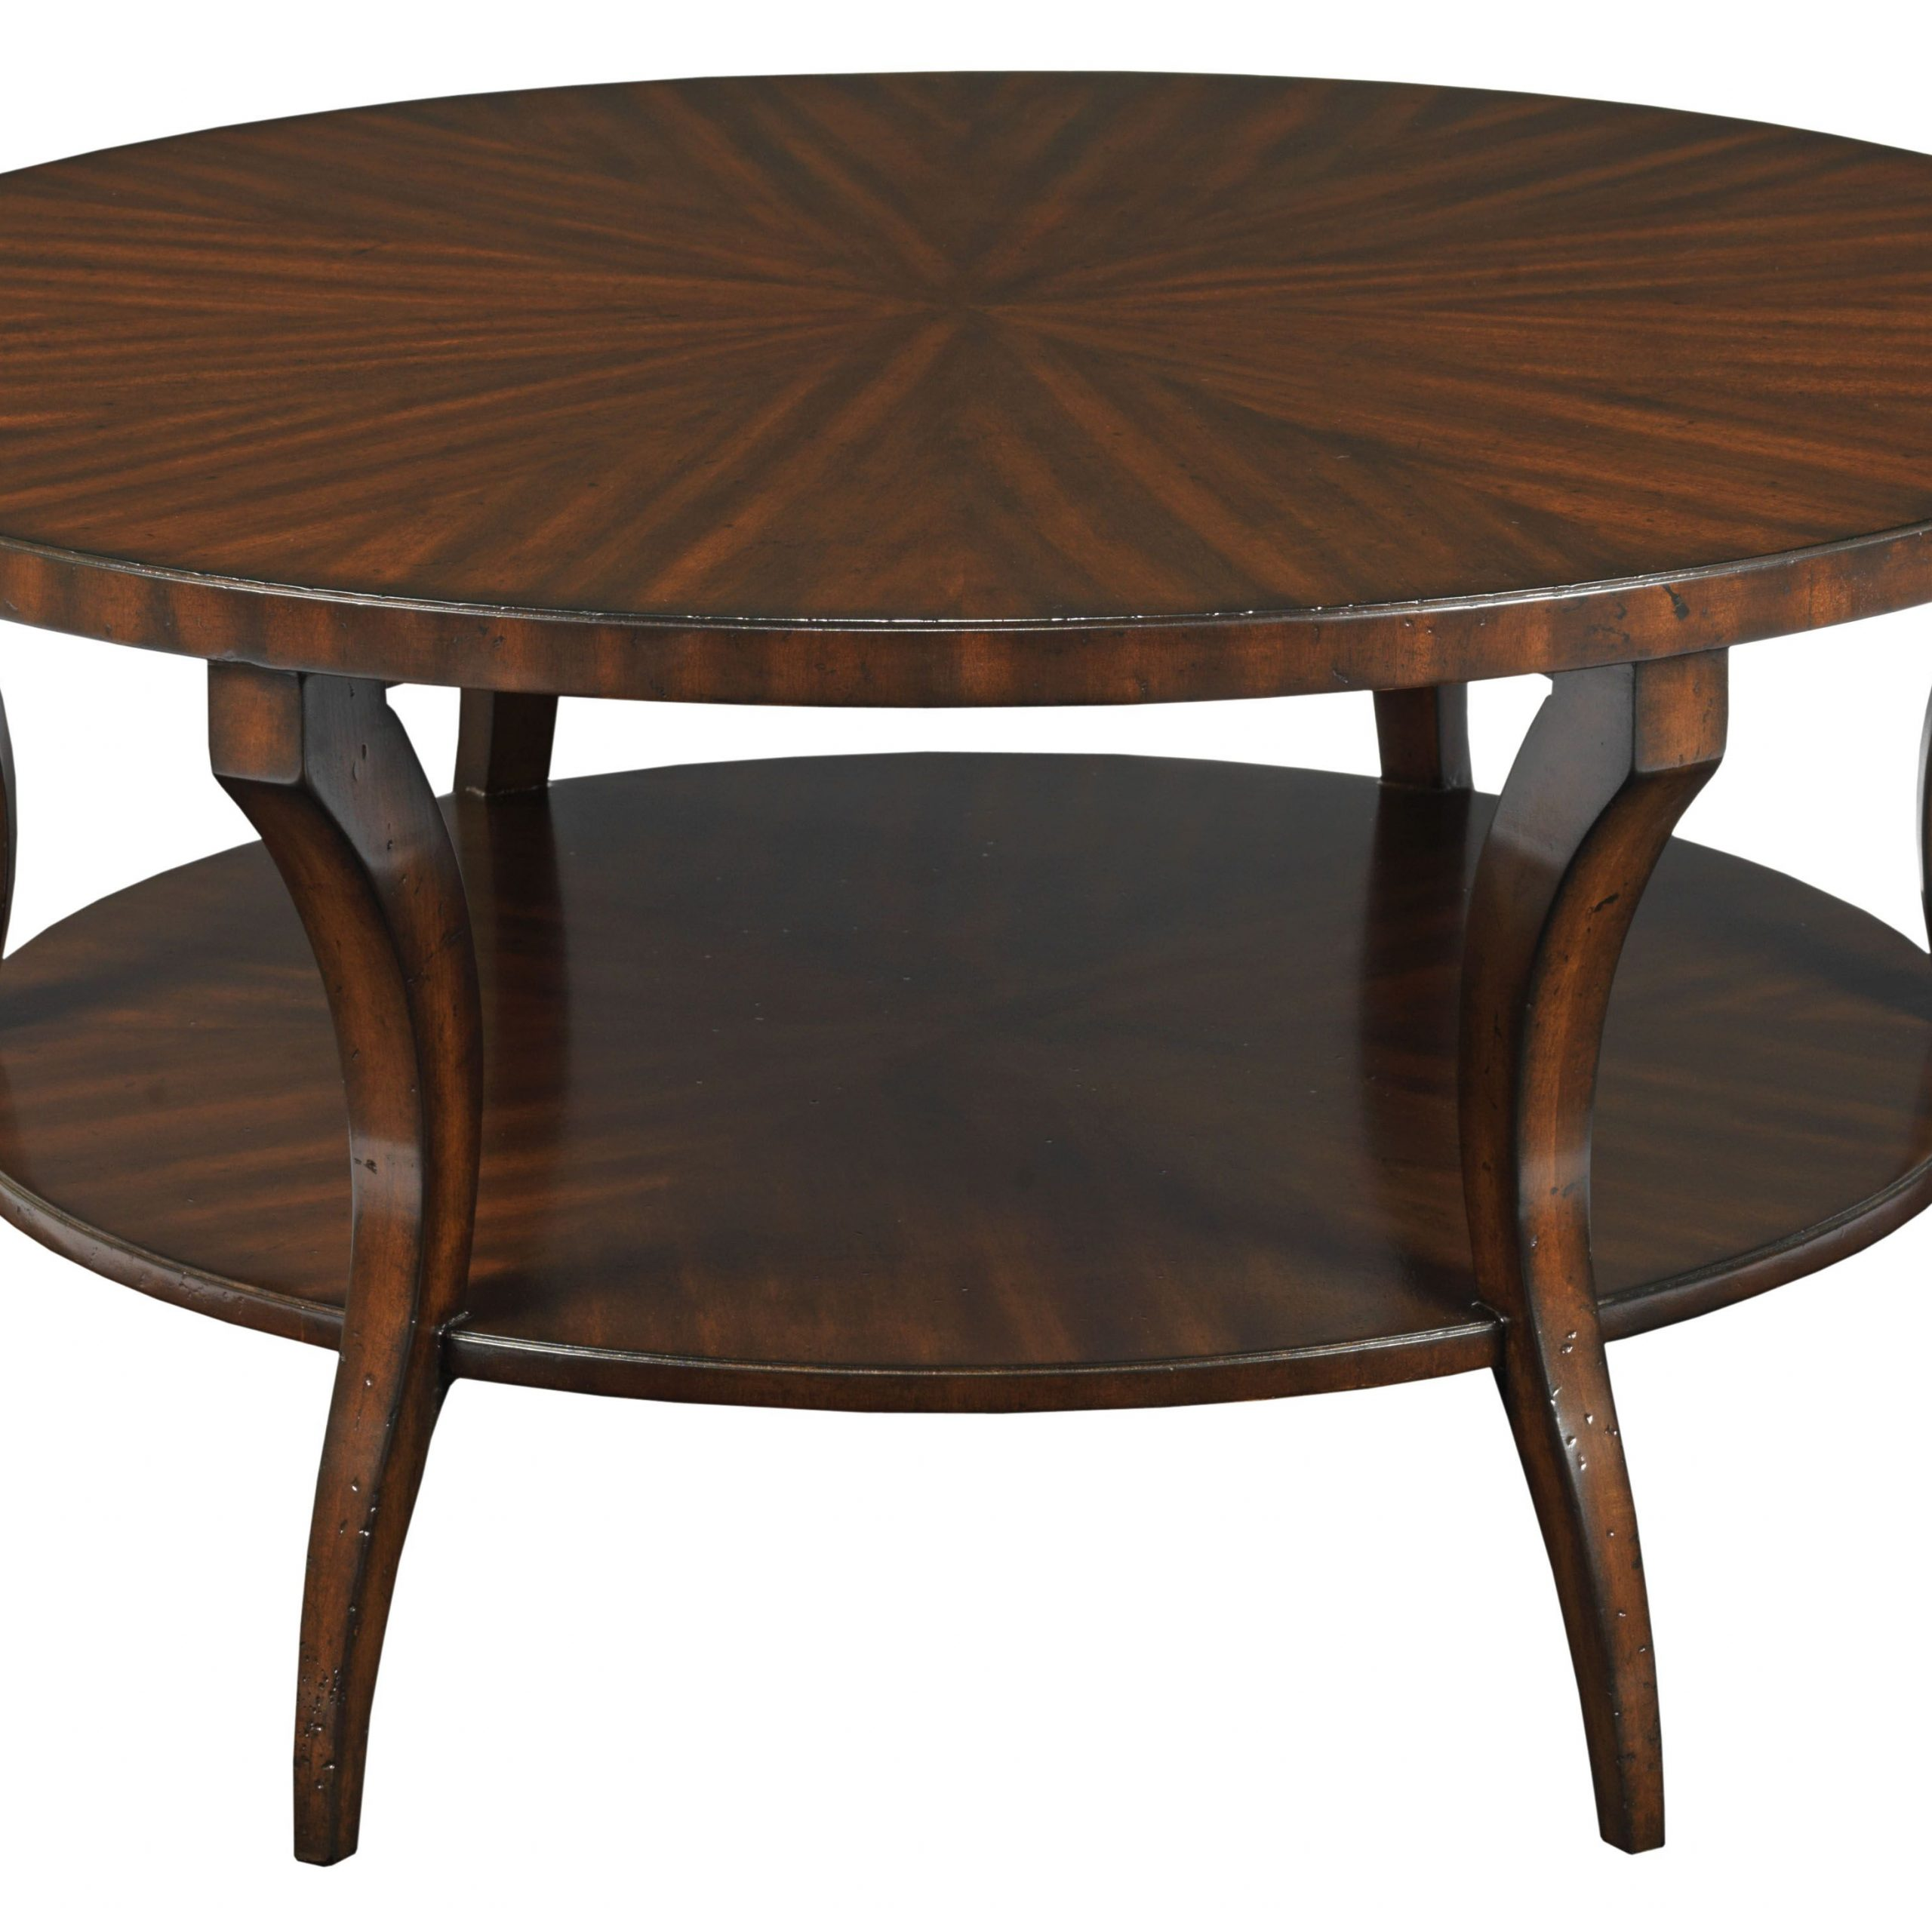 Table, Furniture, Round Intended For Acacia Wood Medley Medium Dining Tables With Metal Base (Gallery 12 of 30)